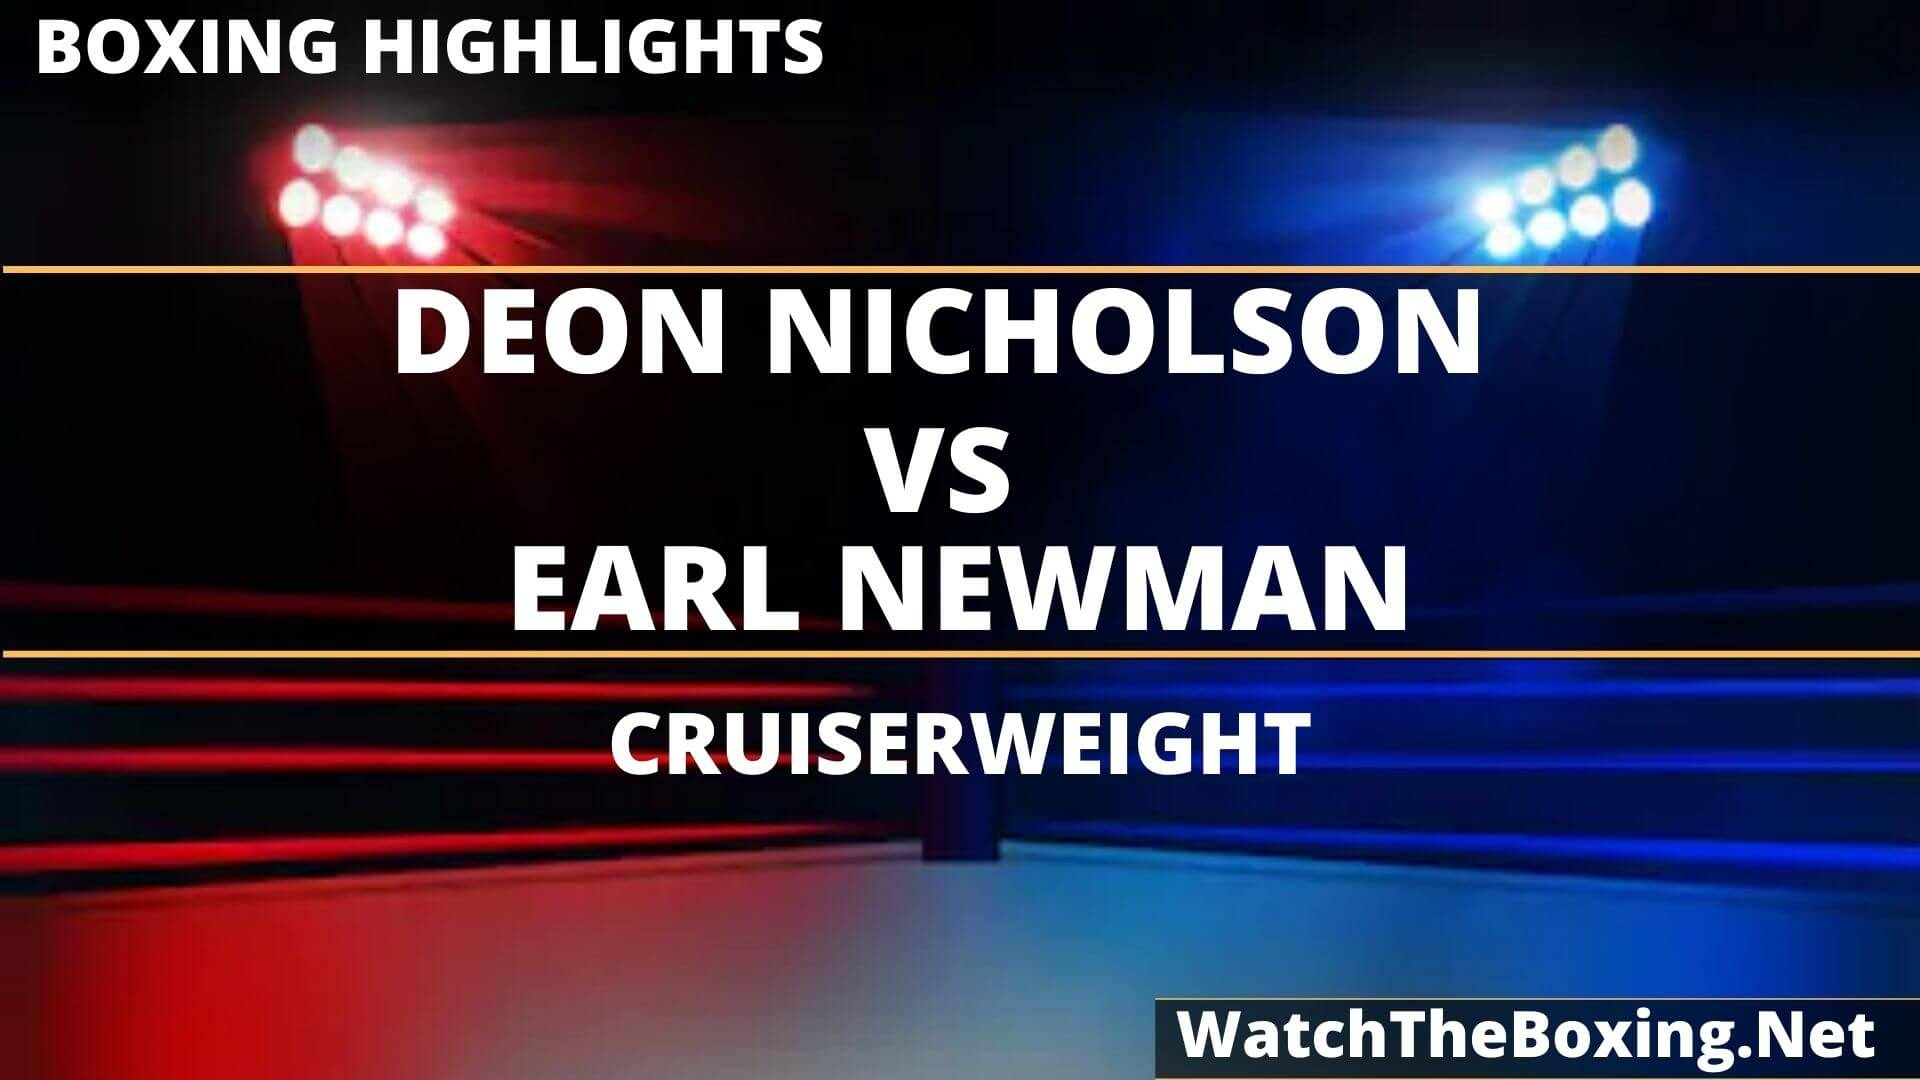 Deon Nicholson Vs Earl Newman Highlights 2020